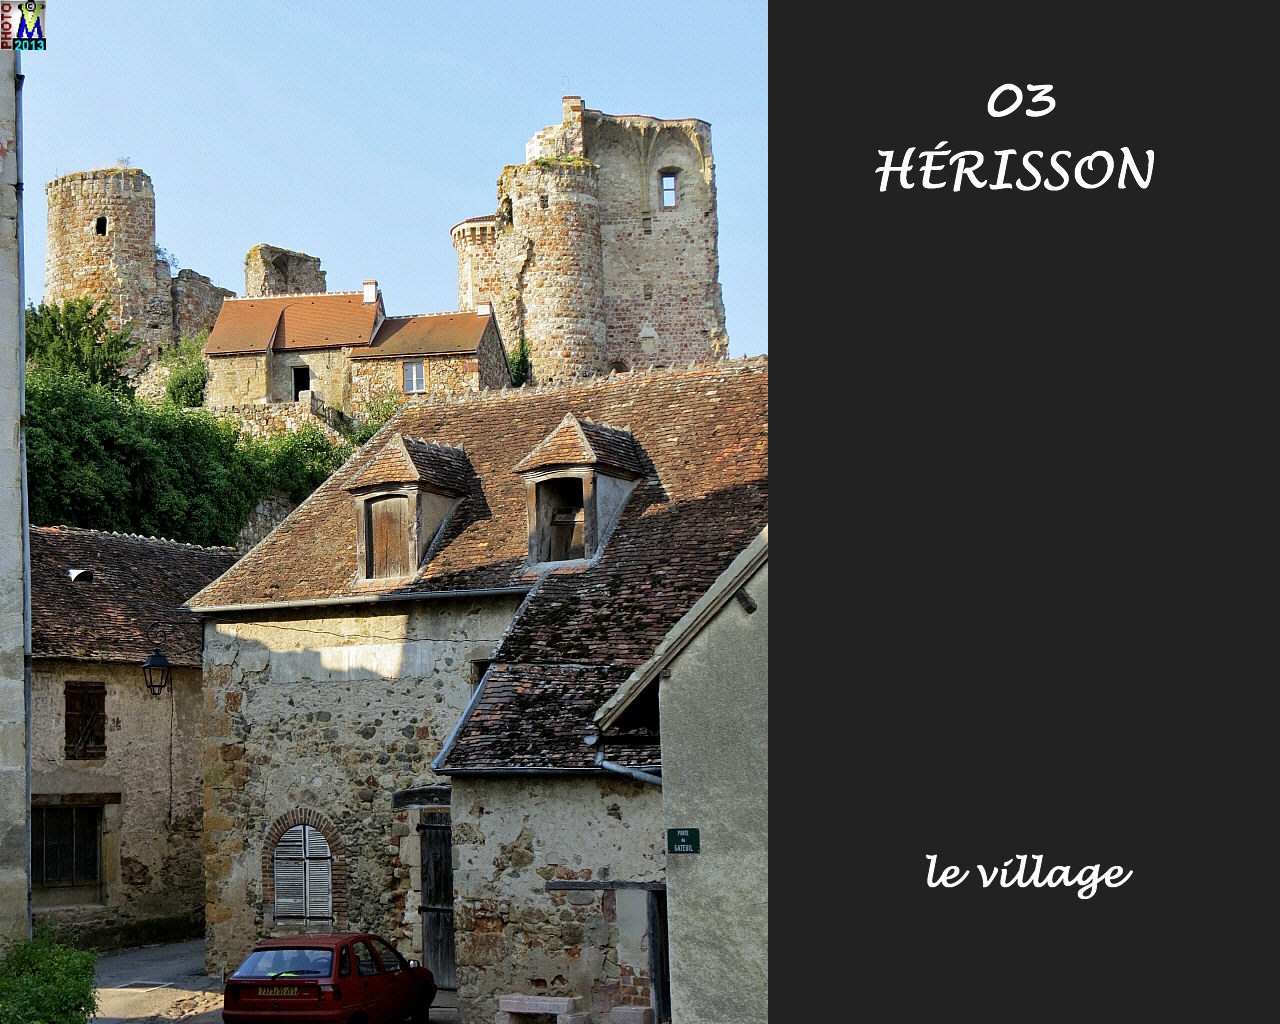 03HERISSON_village_106.jpg